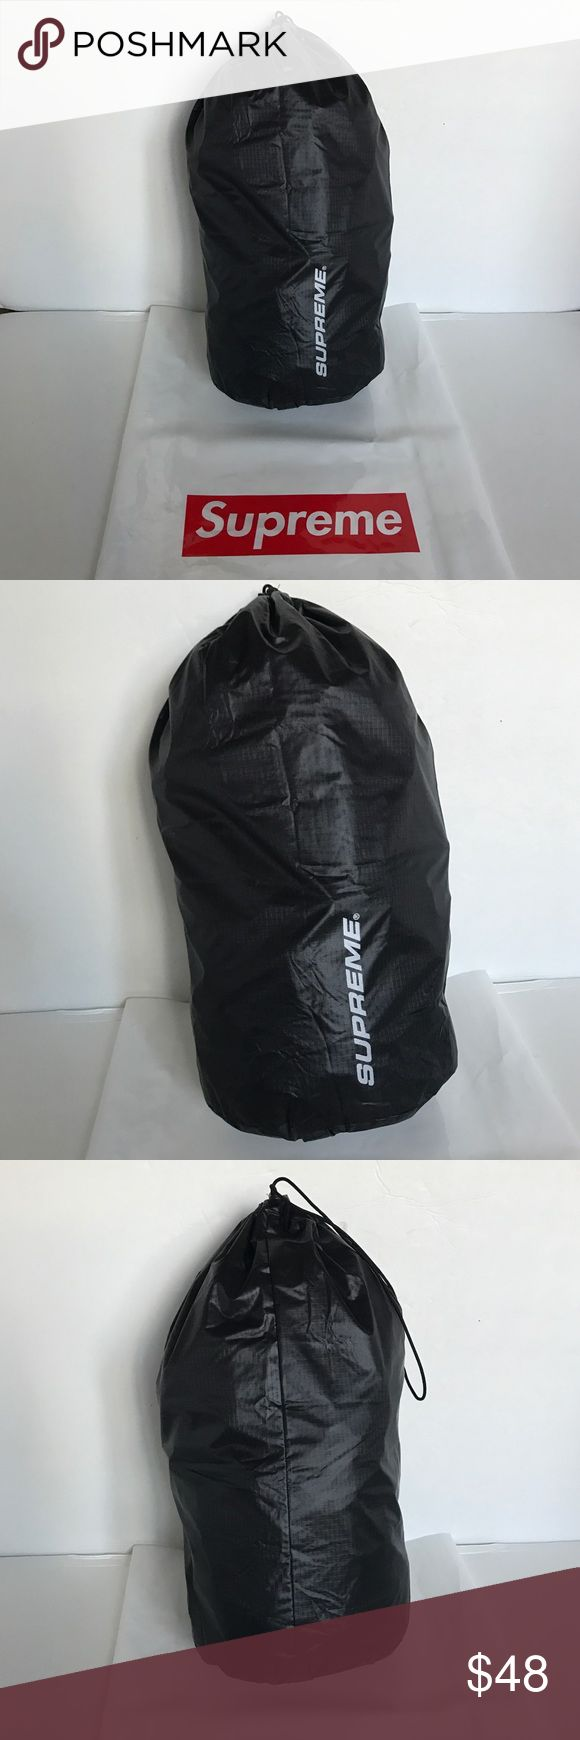 SUPREME 9L. Black Drawstring Ditty Bag 100% Authentic Brand New..  SUPREME 9L. Black Drawstring Ditty Bag  If you are familiar with Supreme, you know that they do not come with tags. They come in plastic bags. This Ditty bag came in a set so it is Brand New but does not come with the plastic bag. 100% Authentic, purchased online from Supreme New York Supreme Bags Travel Bags